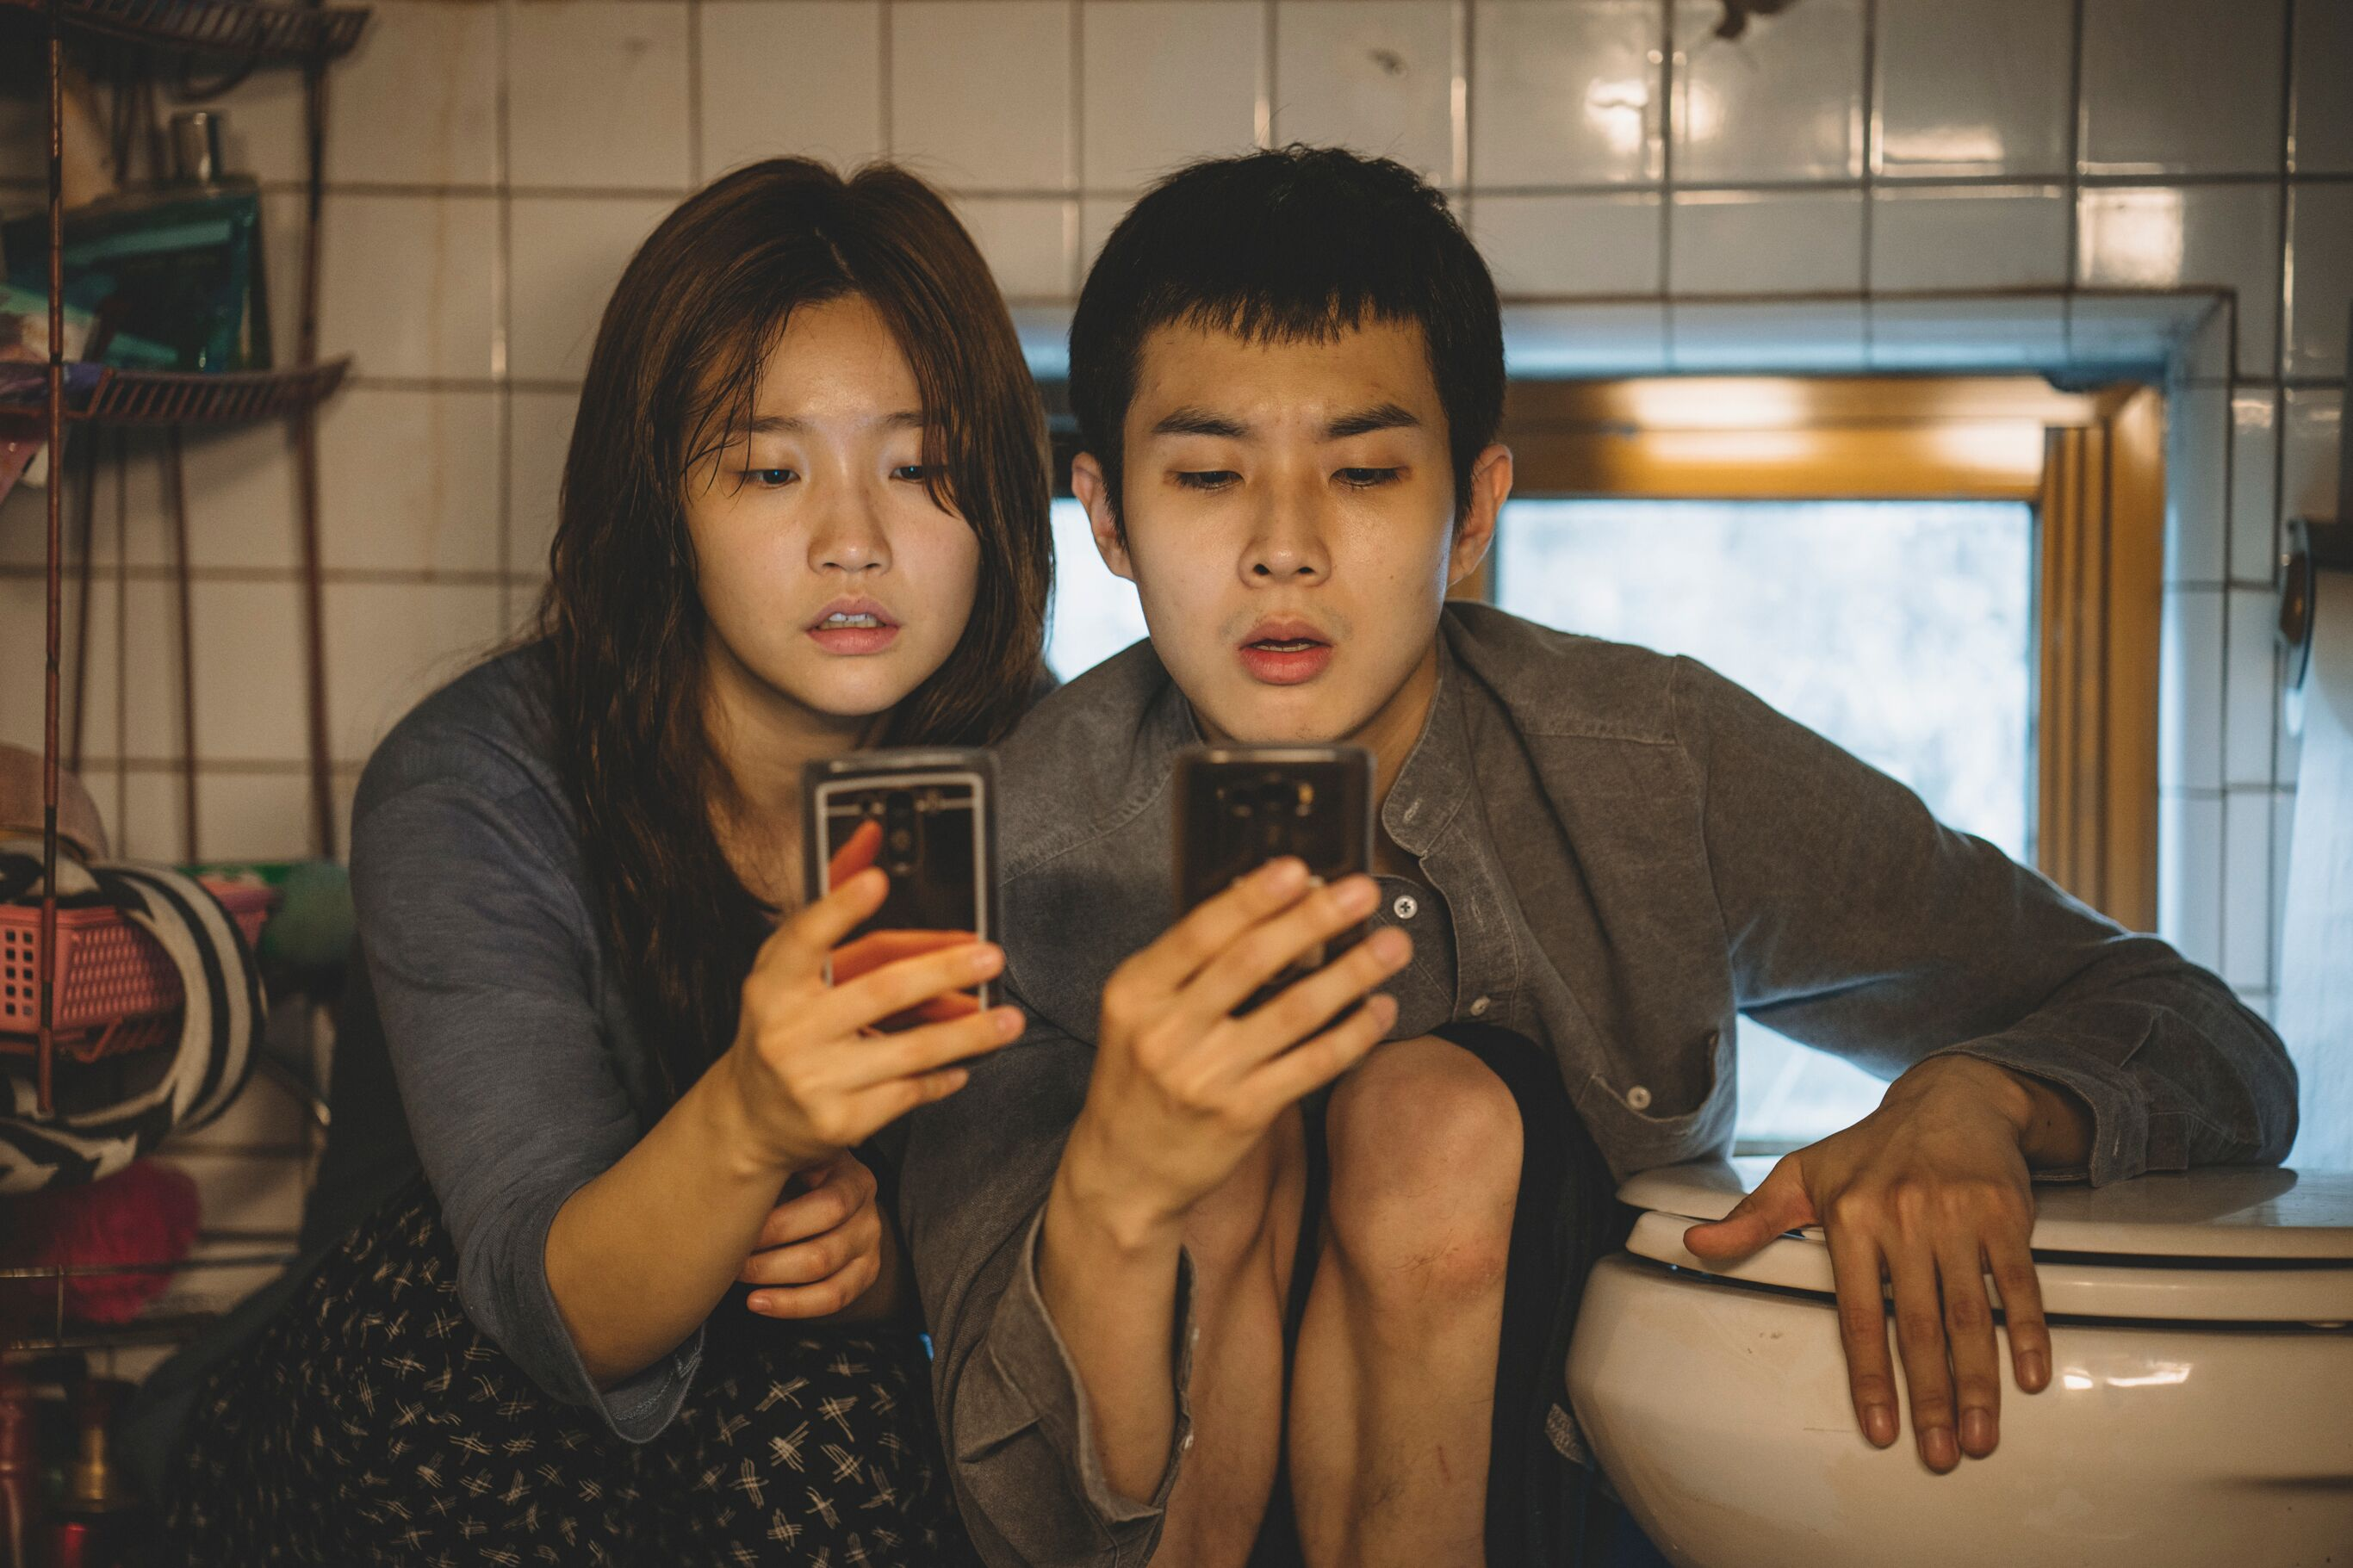 'Parasite' Stars Park So-dam and Choi Woo-shik on Breaking Barriers and Cultural Differences